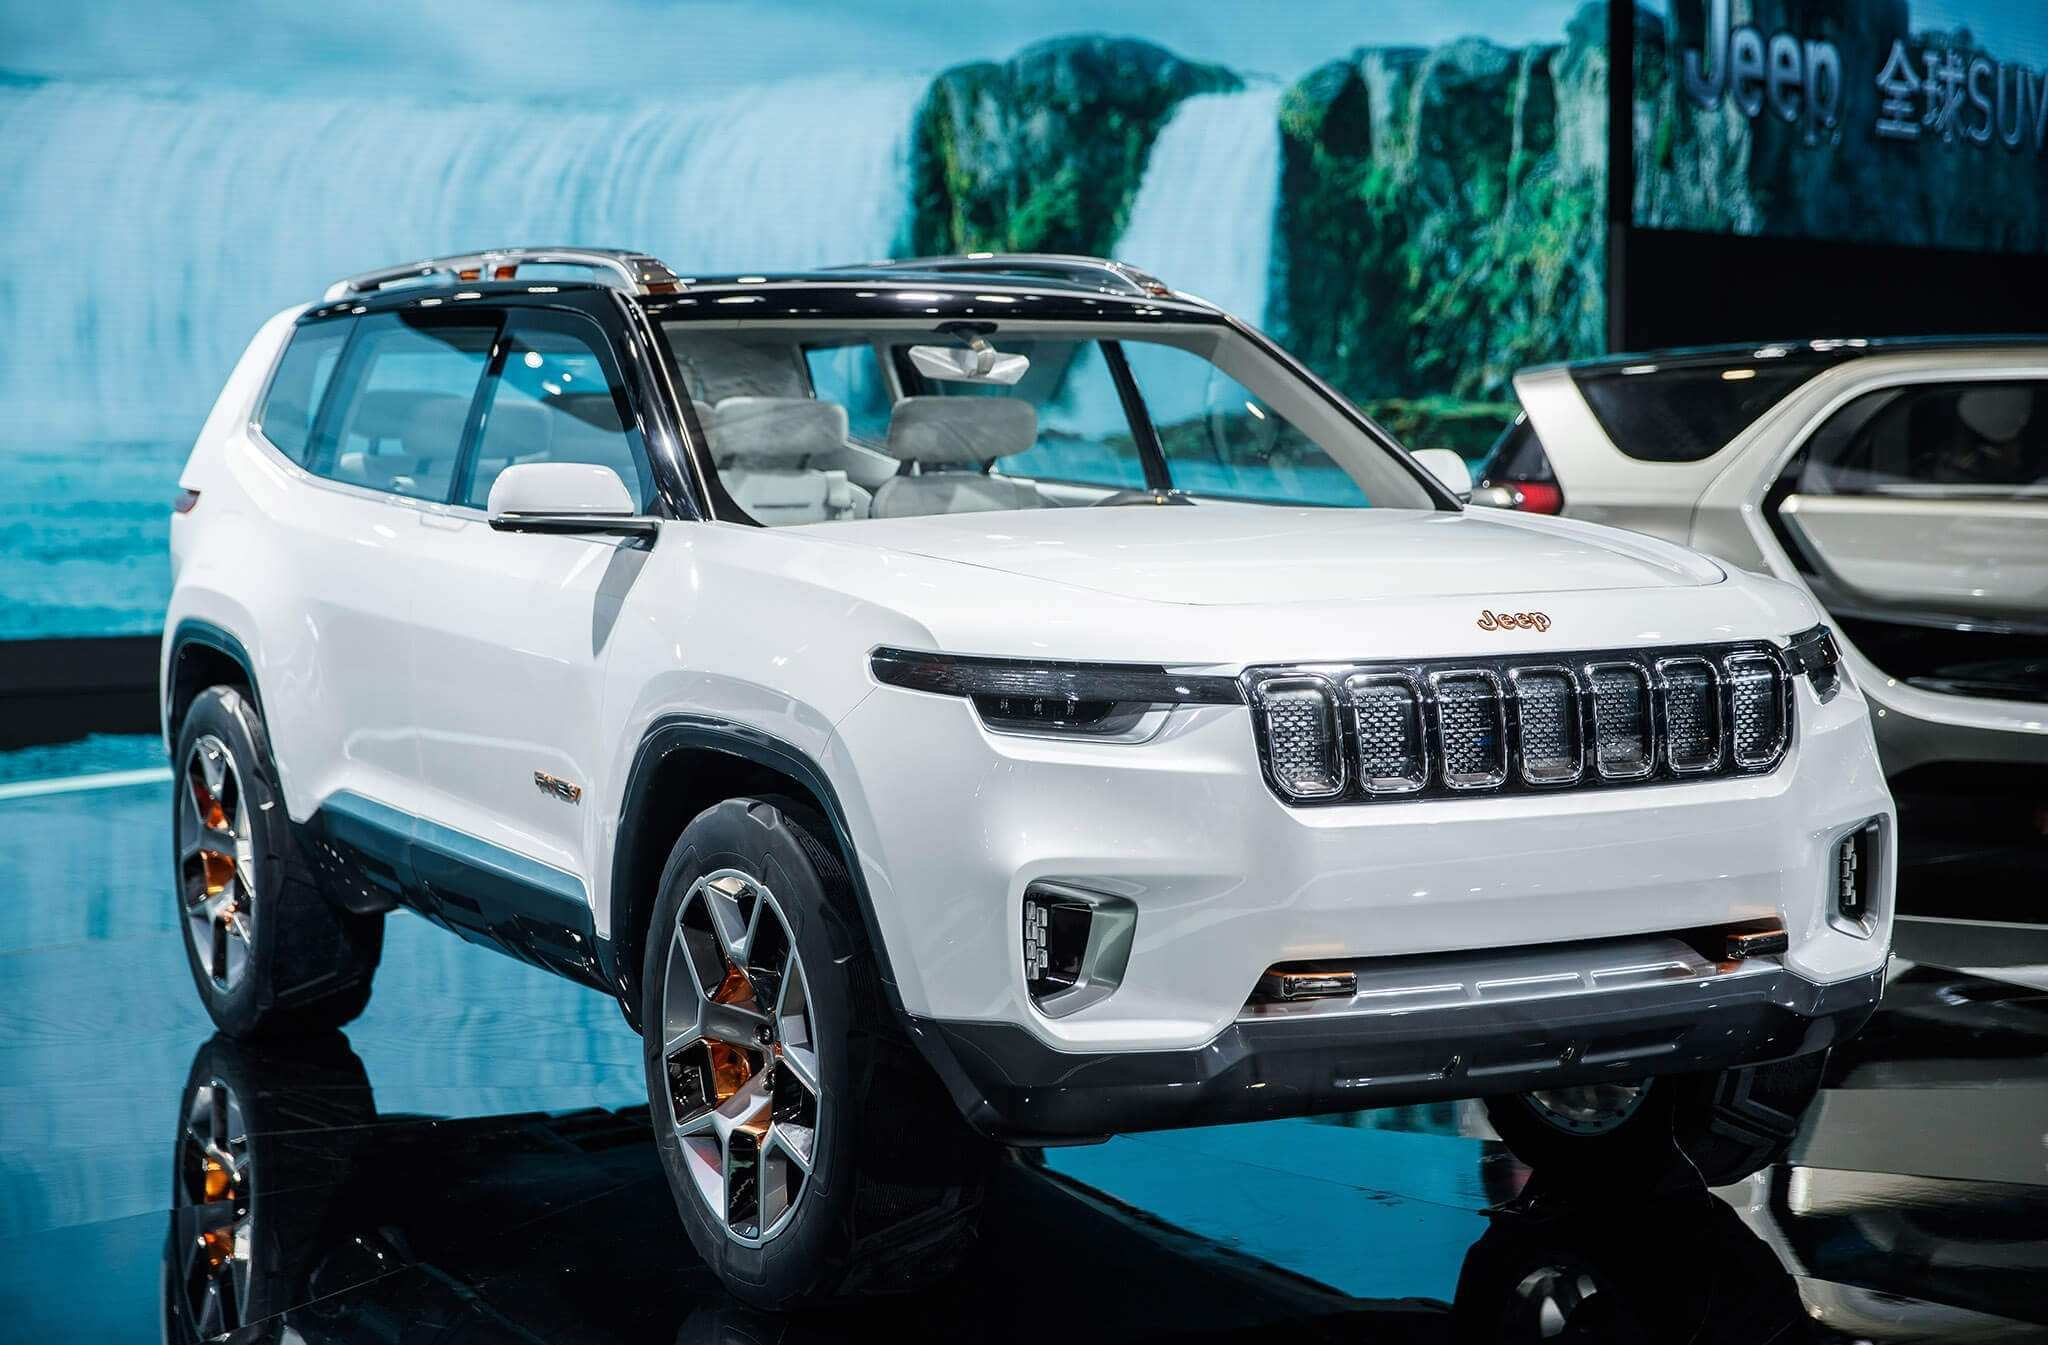 71 All New 2020 Jeep Srt8 Picture by 2020 Jeep Srt8